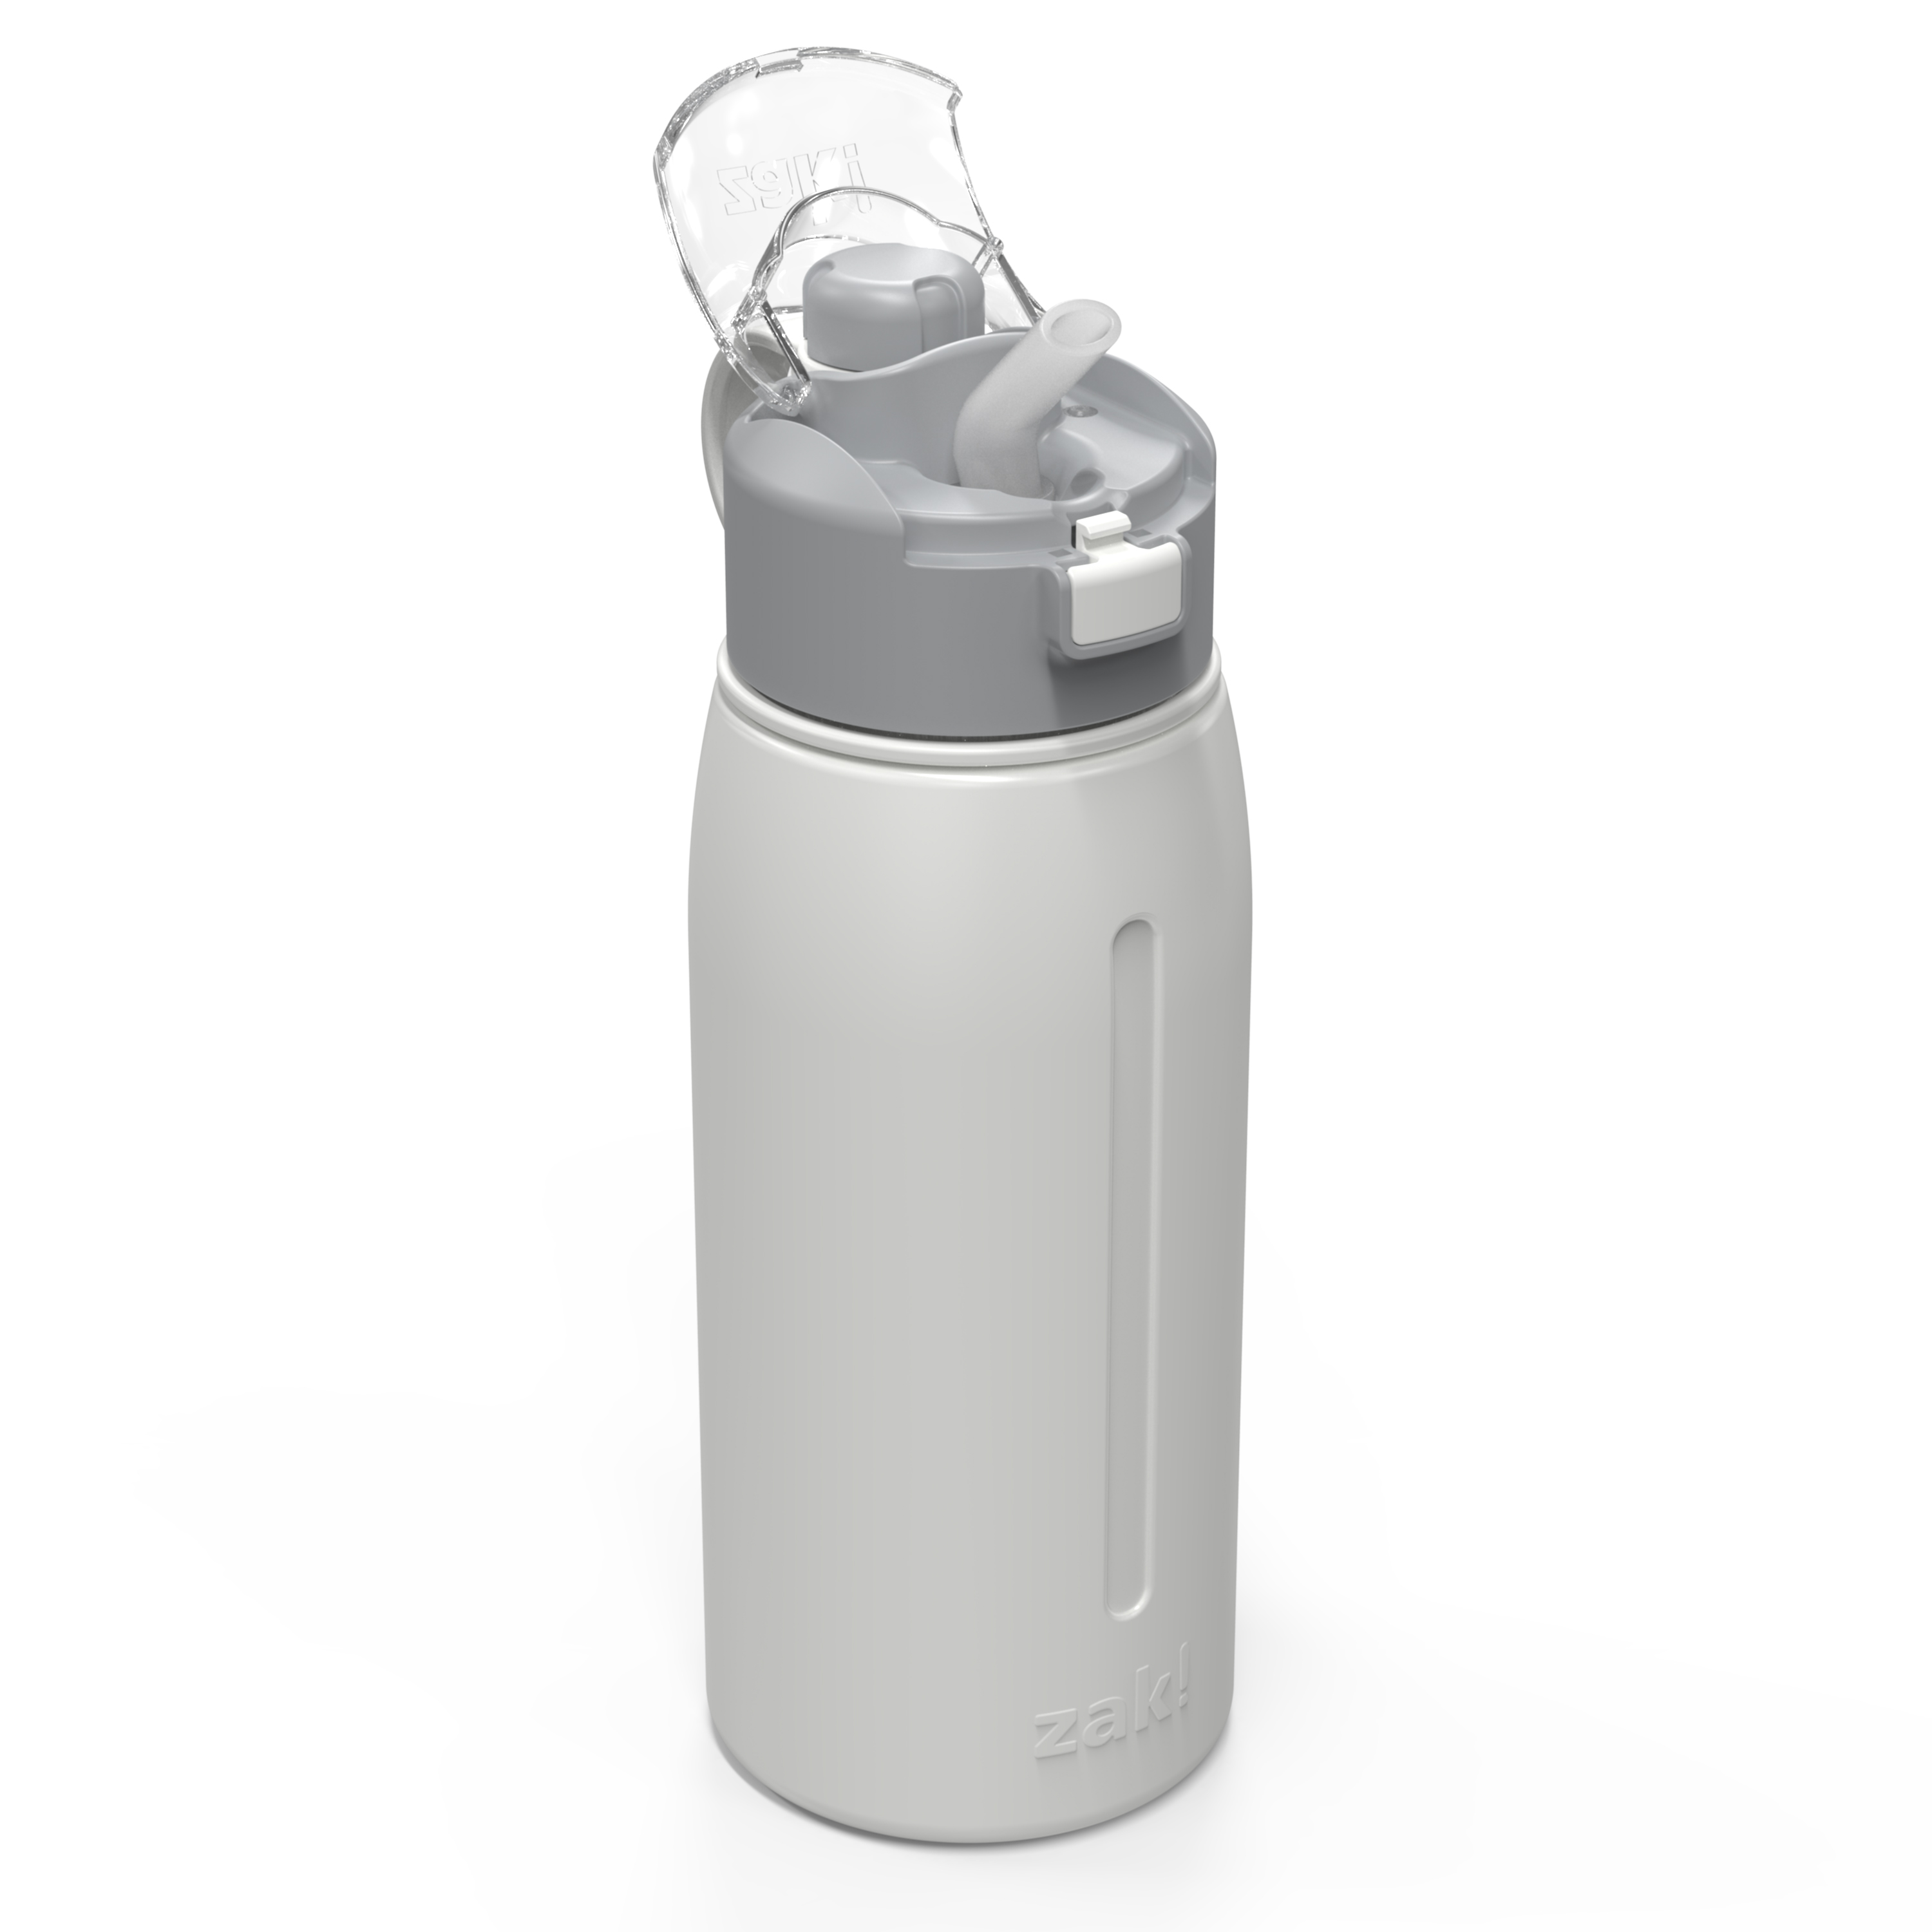 Genesis 24 ounce Vacuum Insulated Stainless Steel Tumbler, Gray slideshow image 2